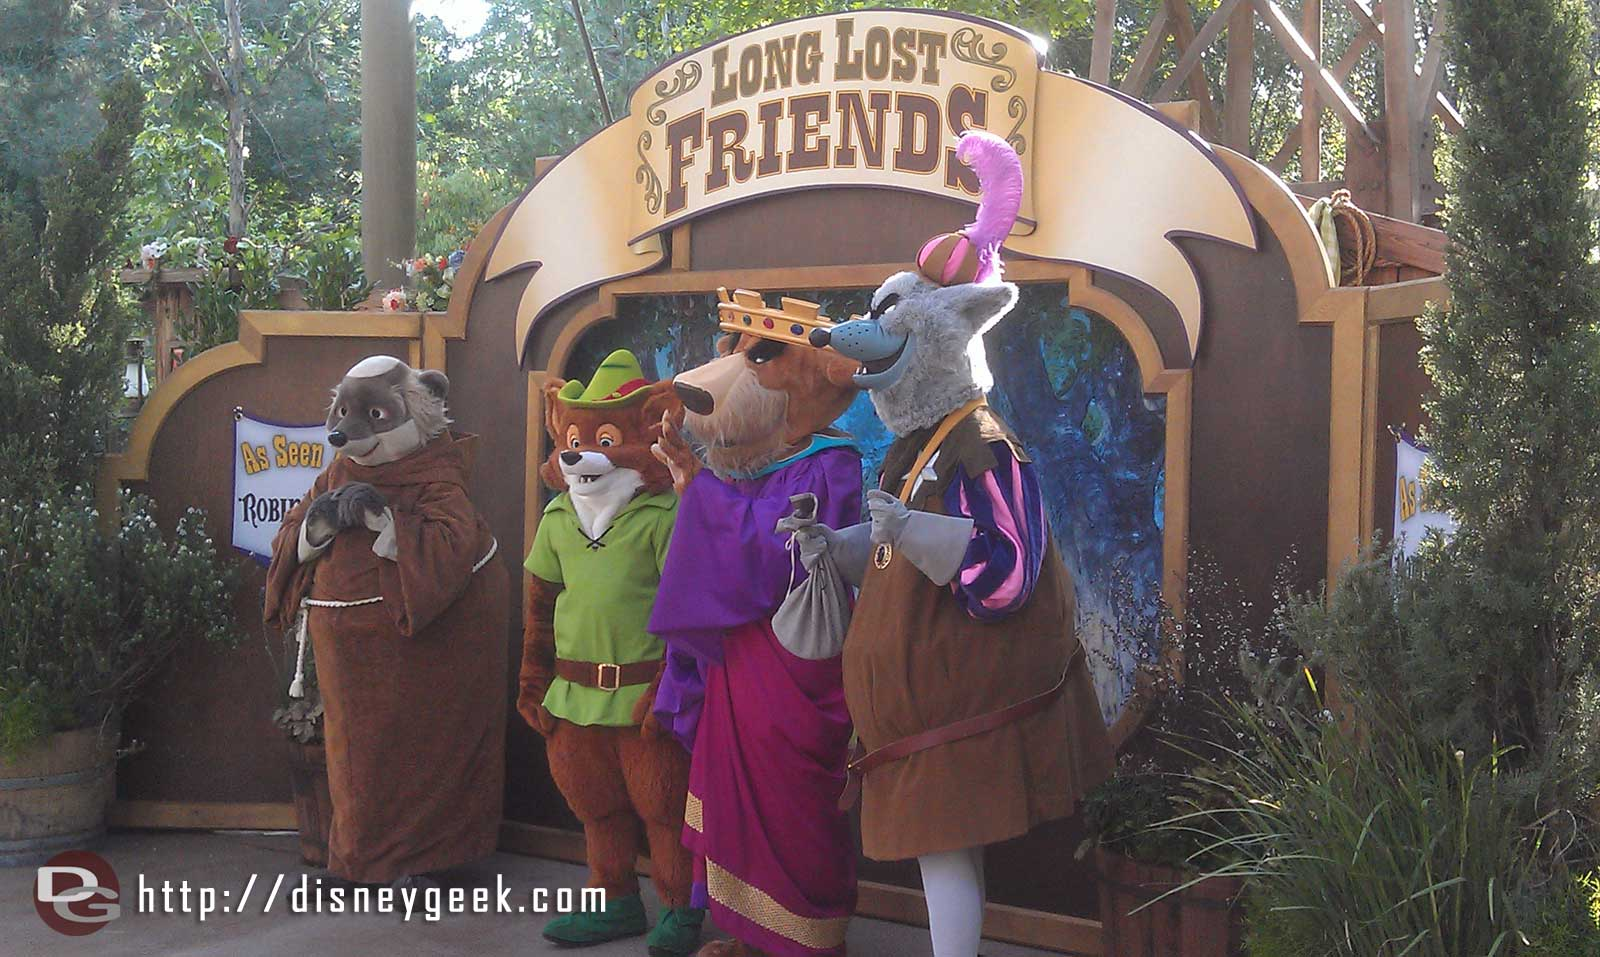 The Robin Hood cast at #longlostfriends week at the Big Thunder Jamboree #limitedtimemagic